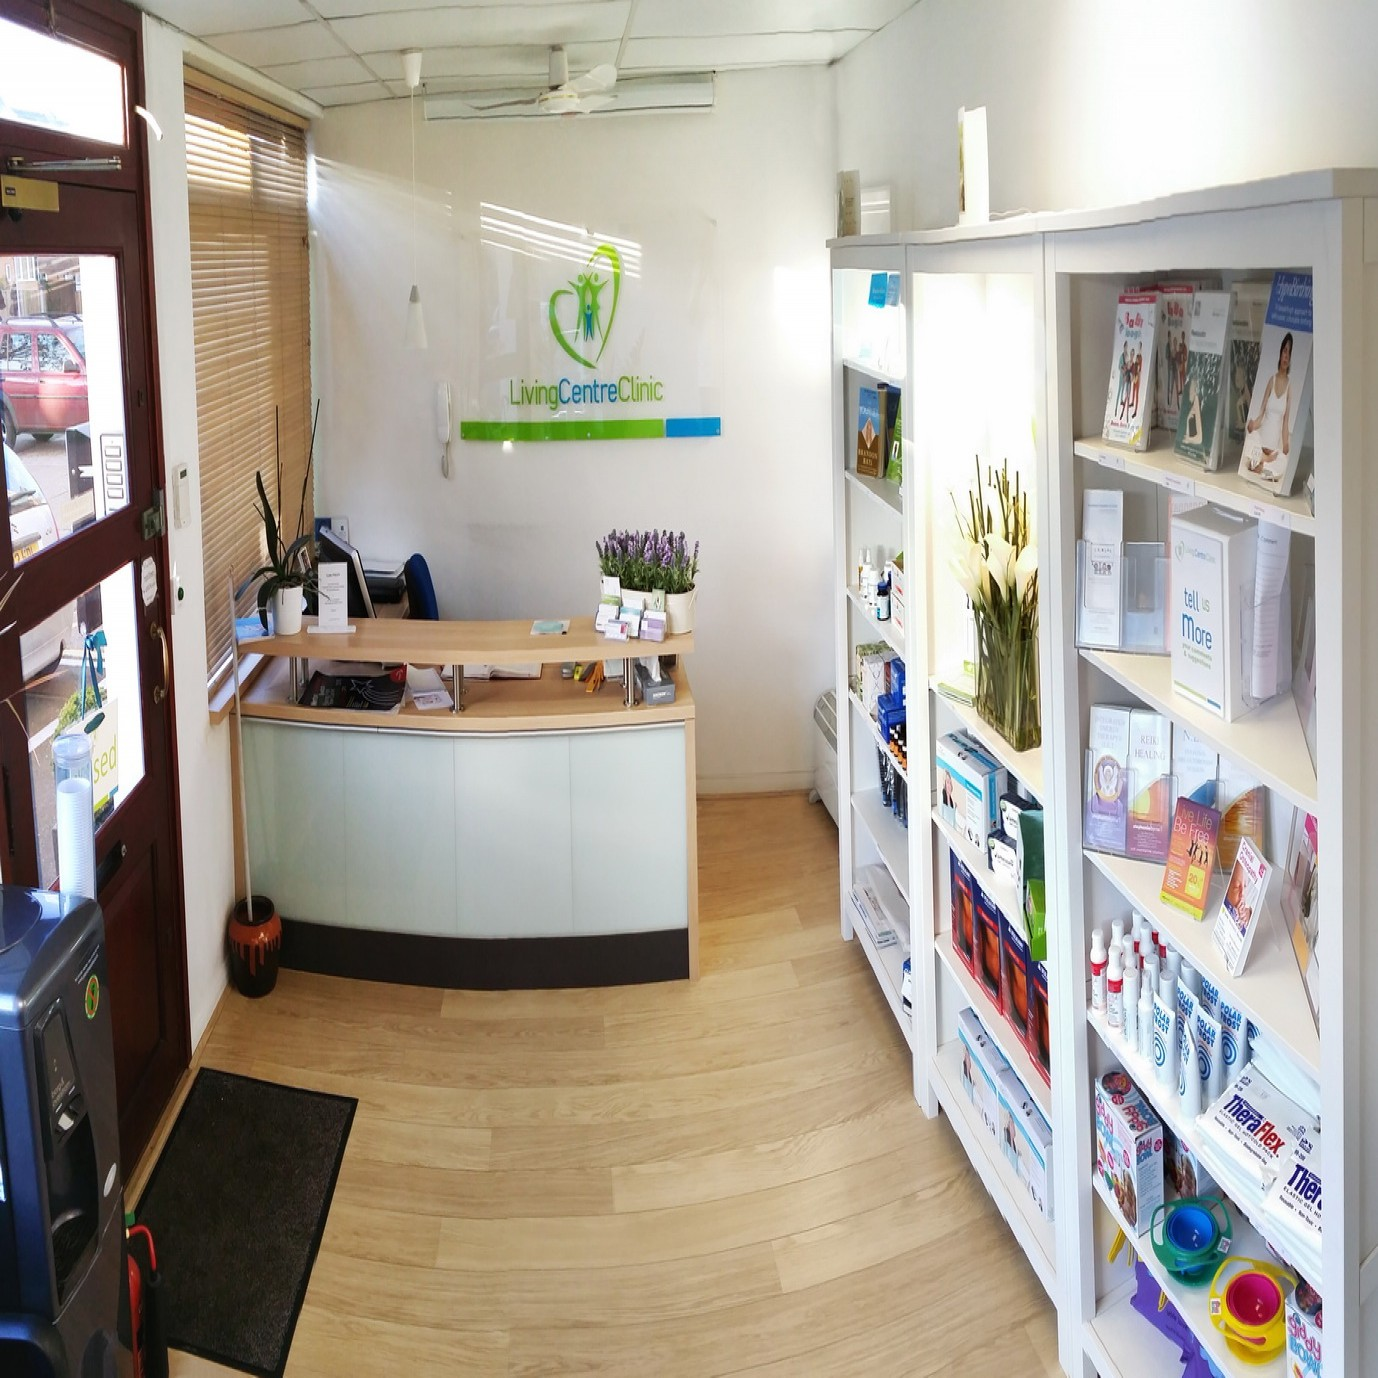 Living Centre Clinic (Wimbledon)